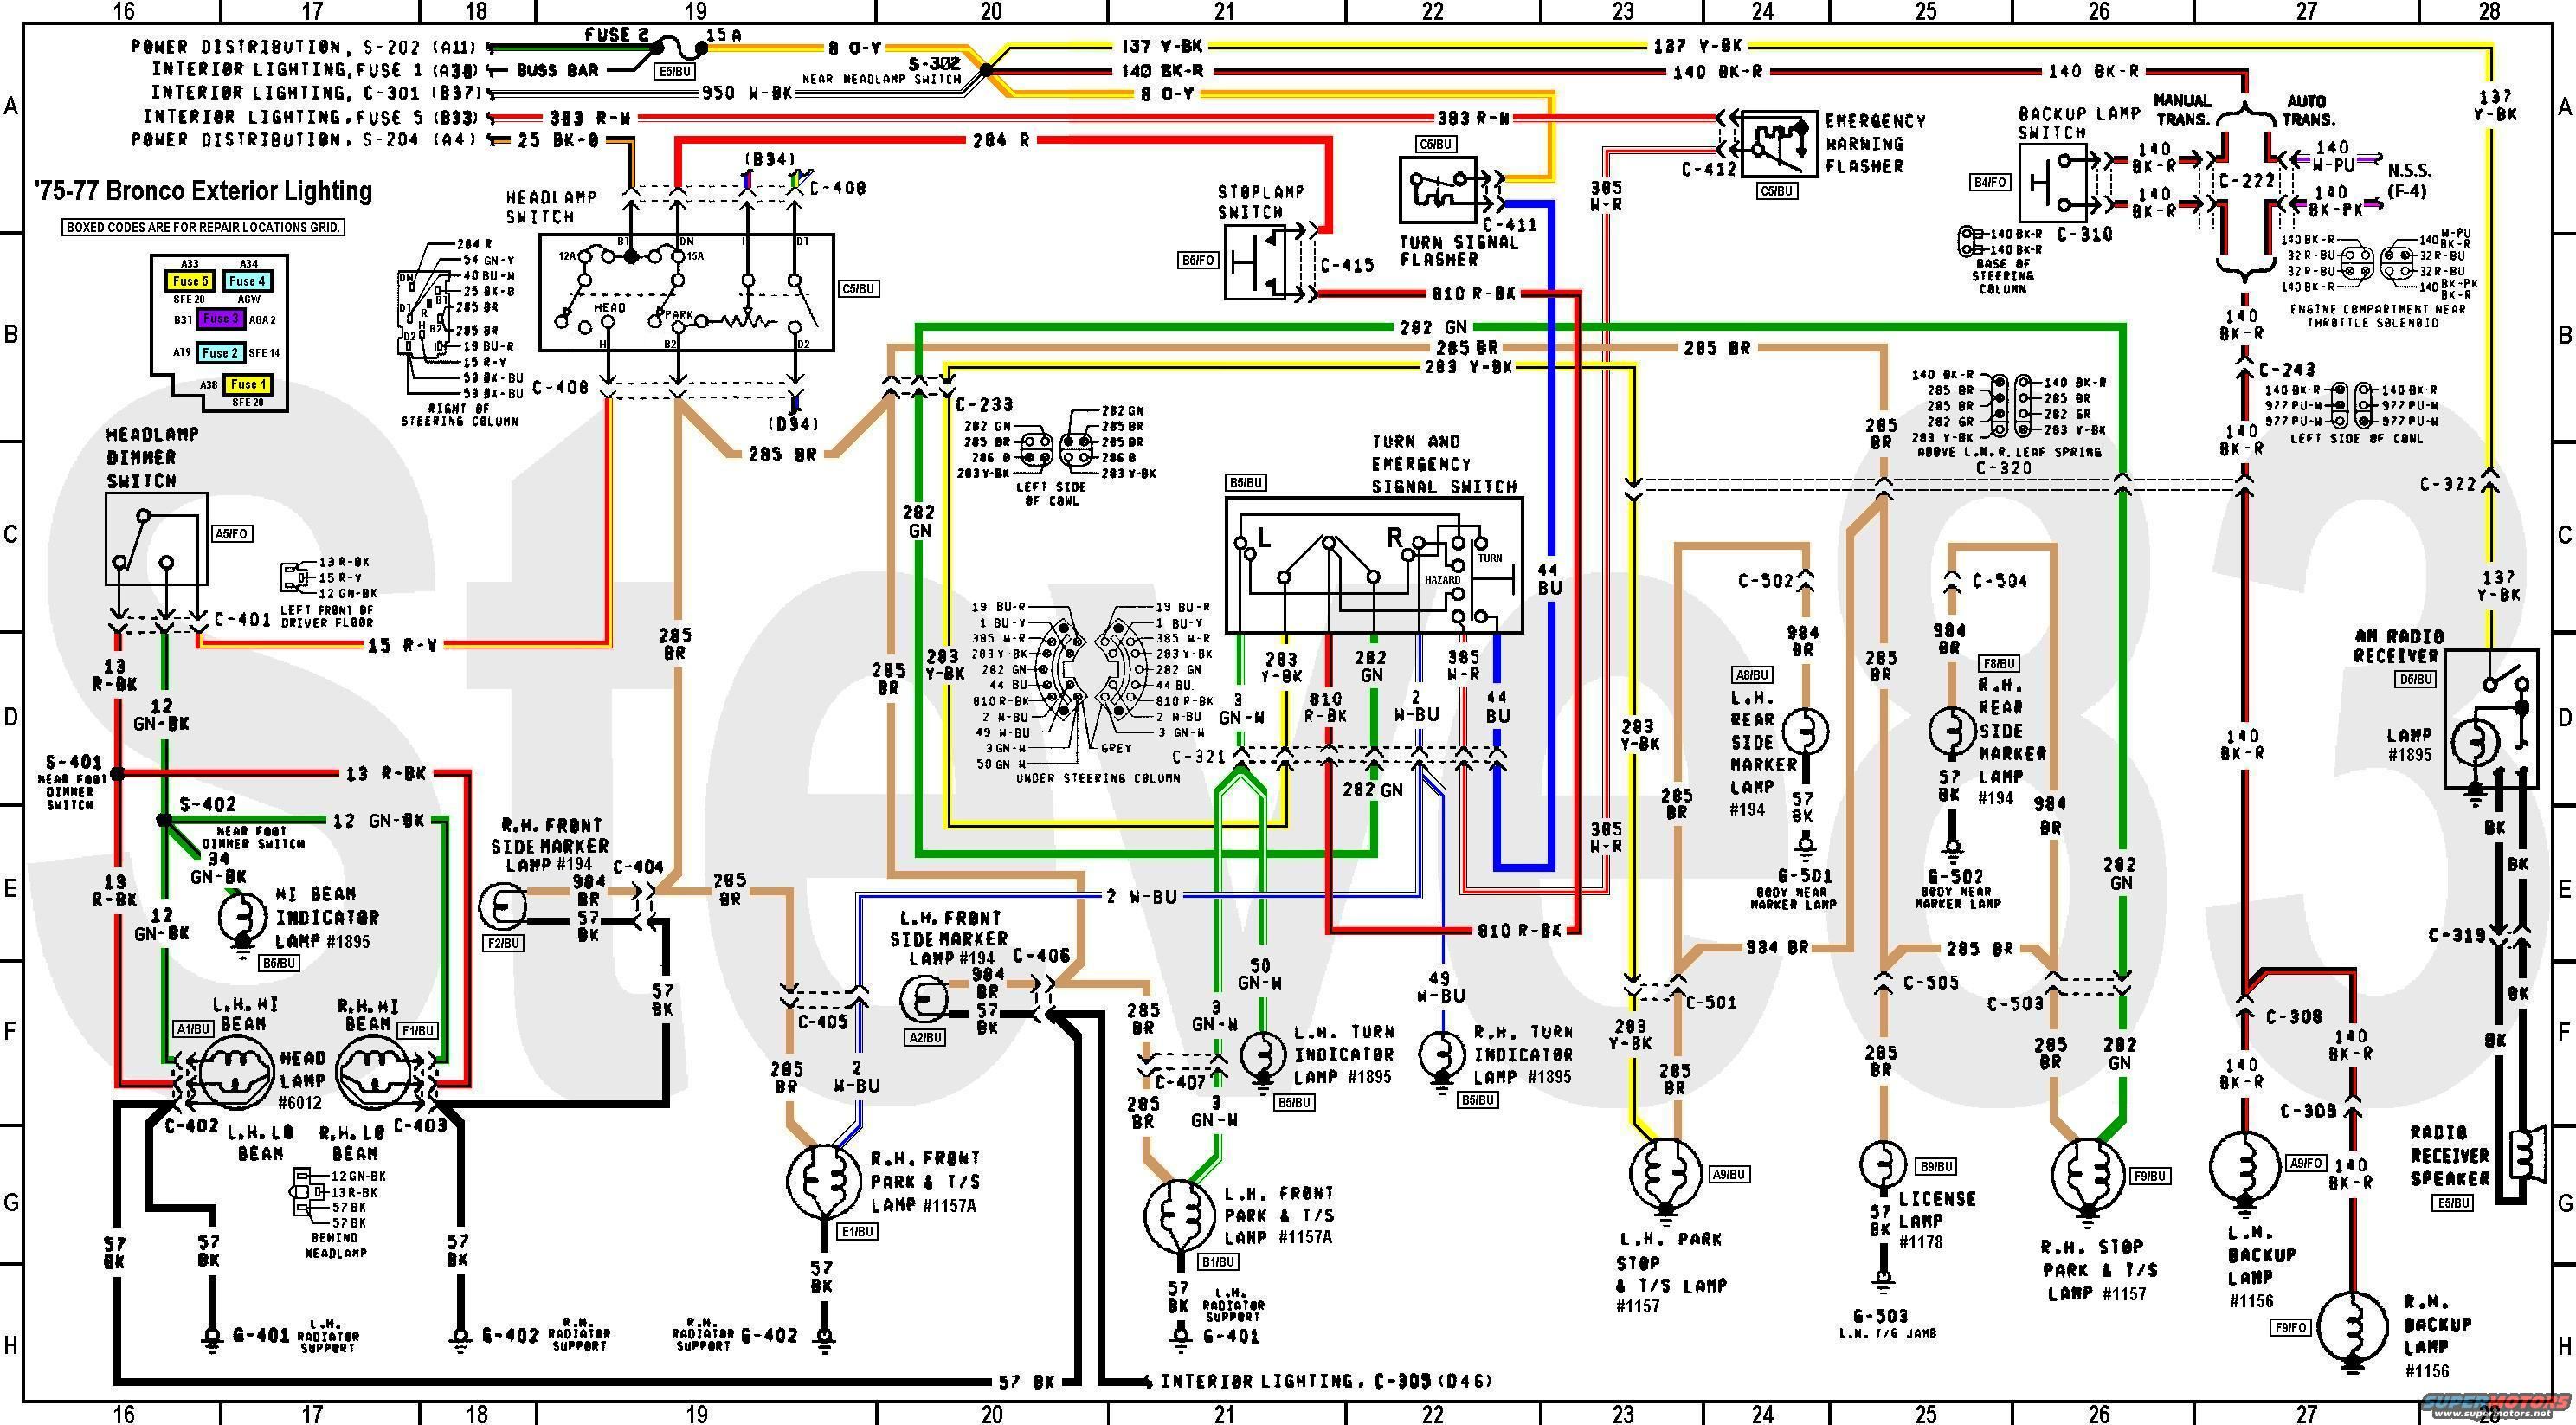 wiring7577bextrltg wiring diagram for 1974 ford bronco the wiring diagram 1972 ford bronco wiring diagram at n-0.co